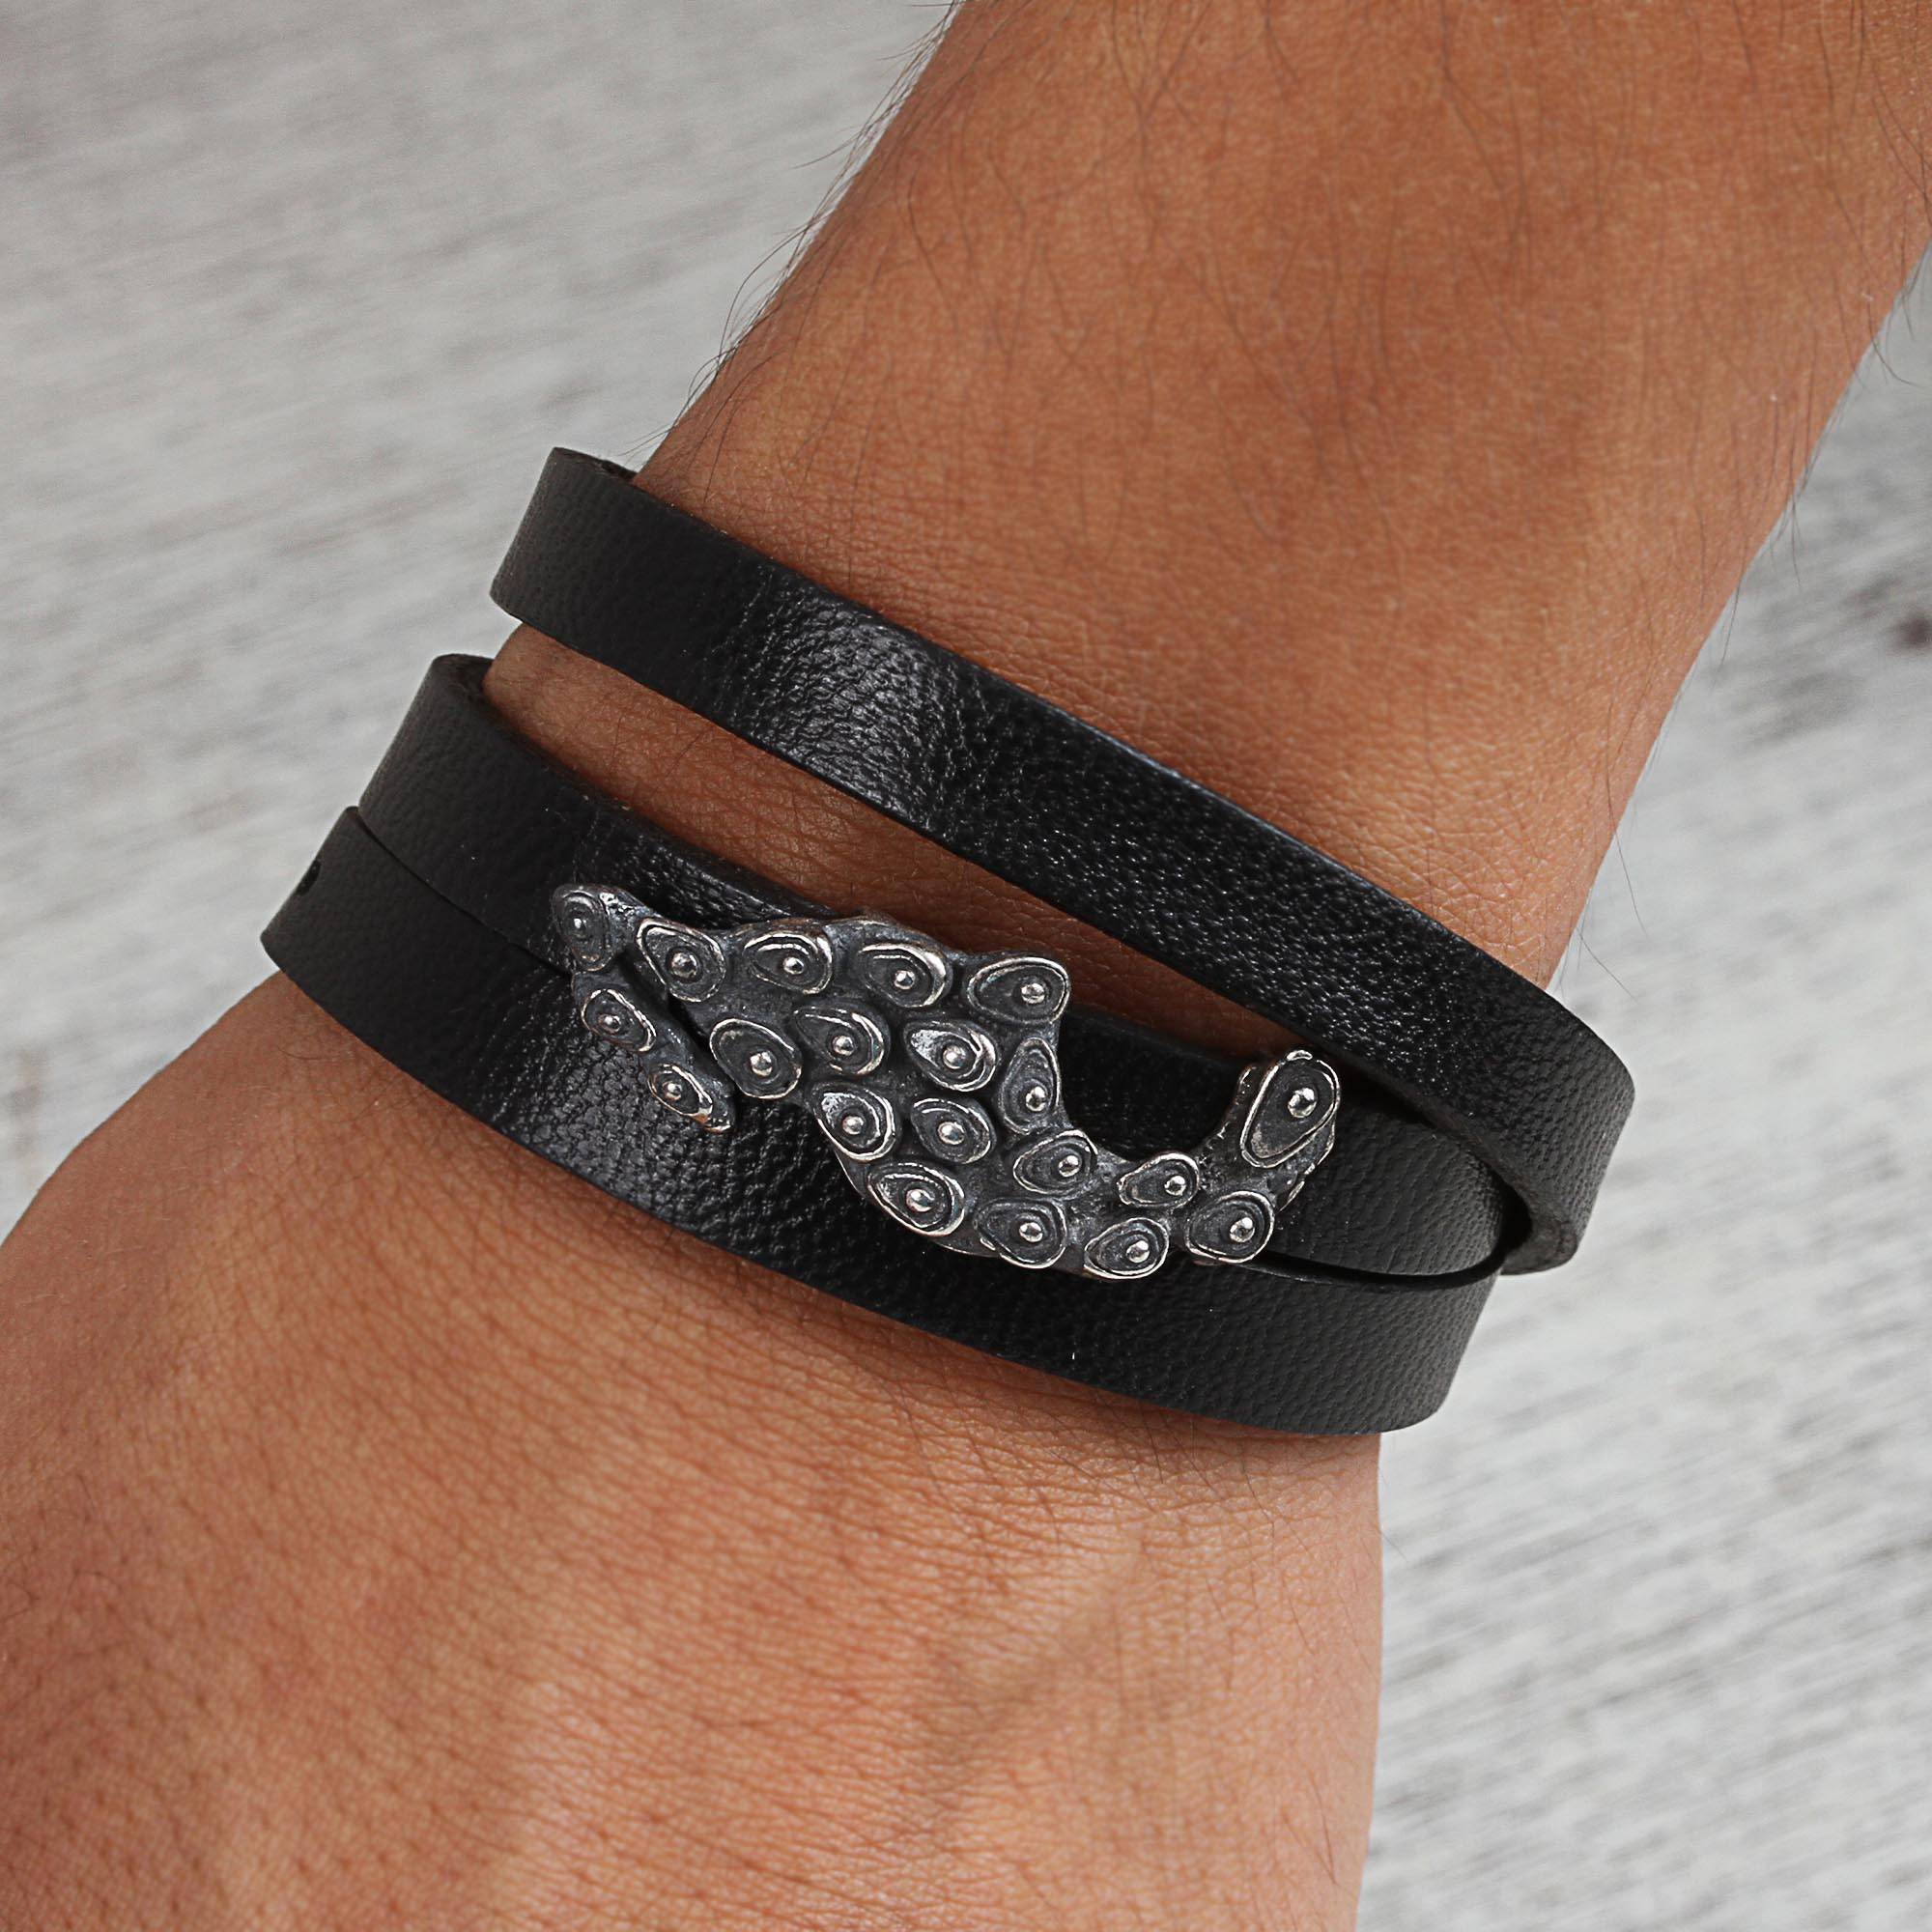 Sterling Silver And Leather Wrap Bracelet From Mexico Avocados